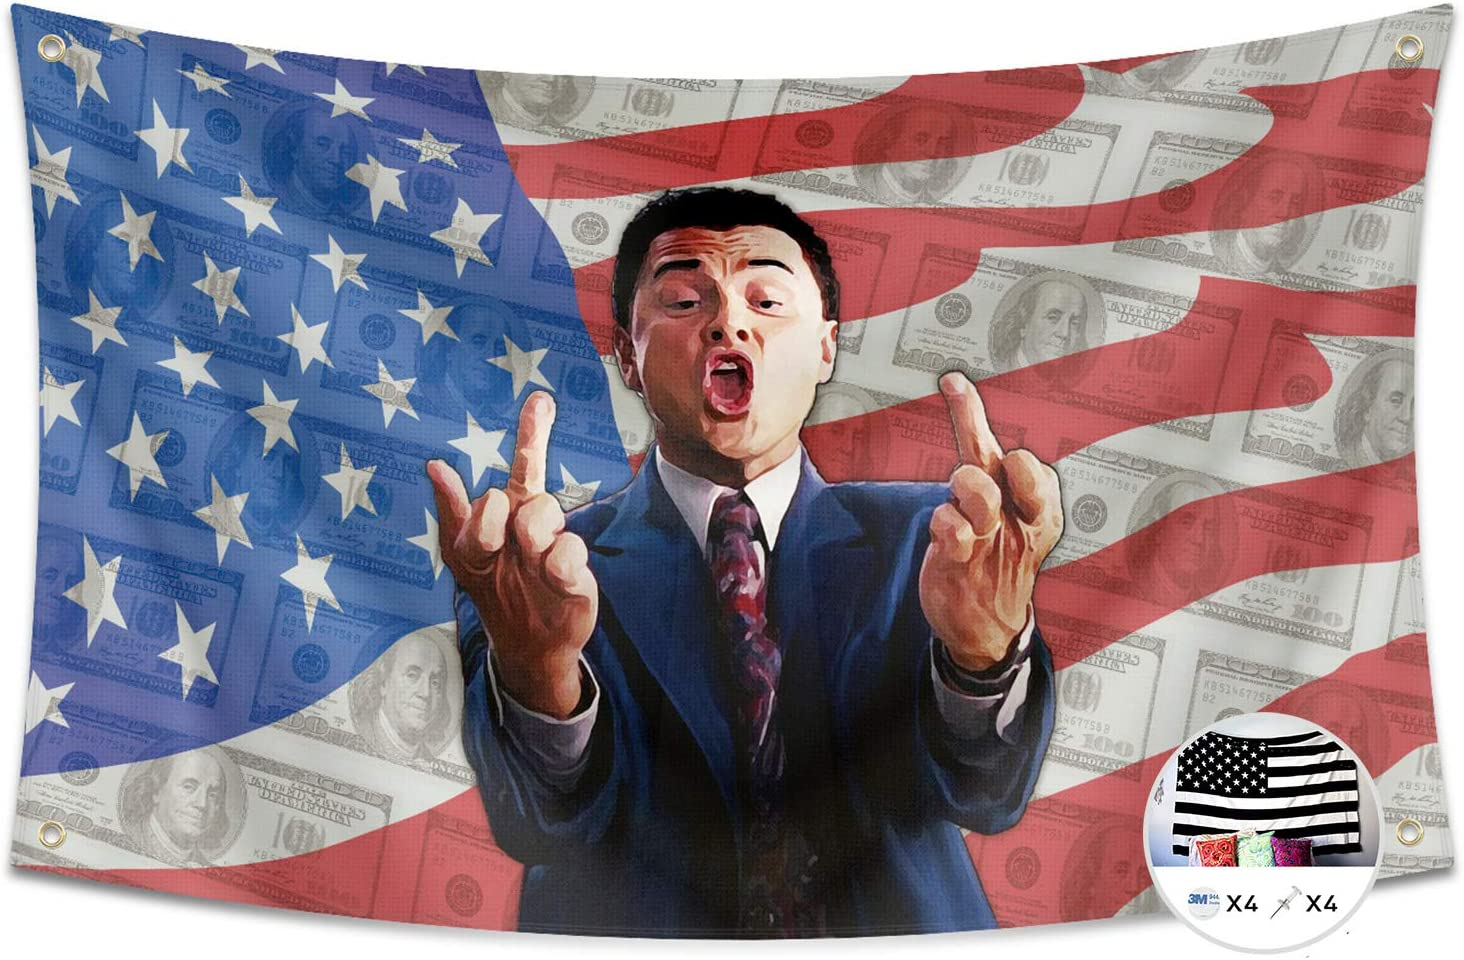 Probsin Wolf of Wall Street Flag Cool Flags,3x5 Feet Banner,Funny Poster UV Resistance Fading & Durable Man Cave Wall Flag with Brass Grommets for College Dorm Room Decor,Parties,Gift,Tailgates